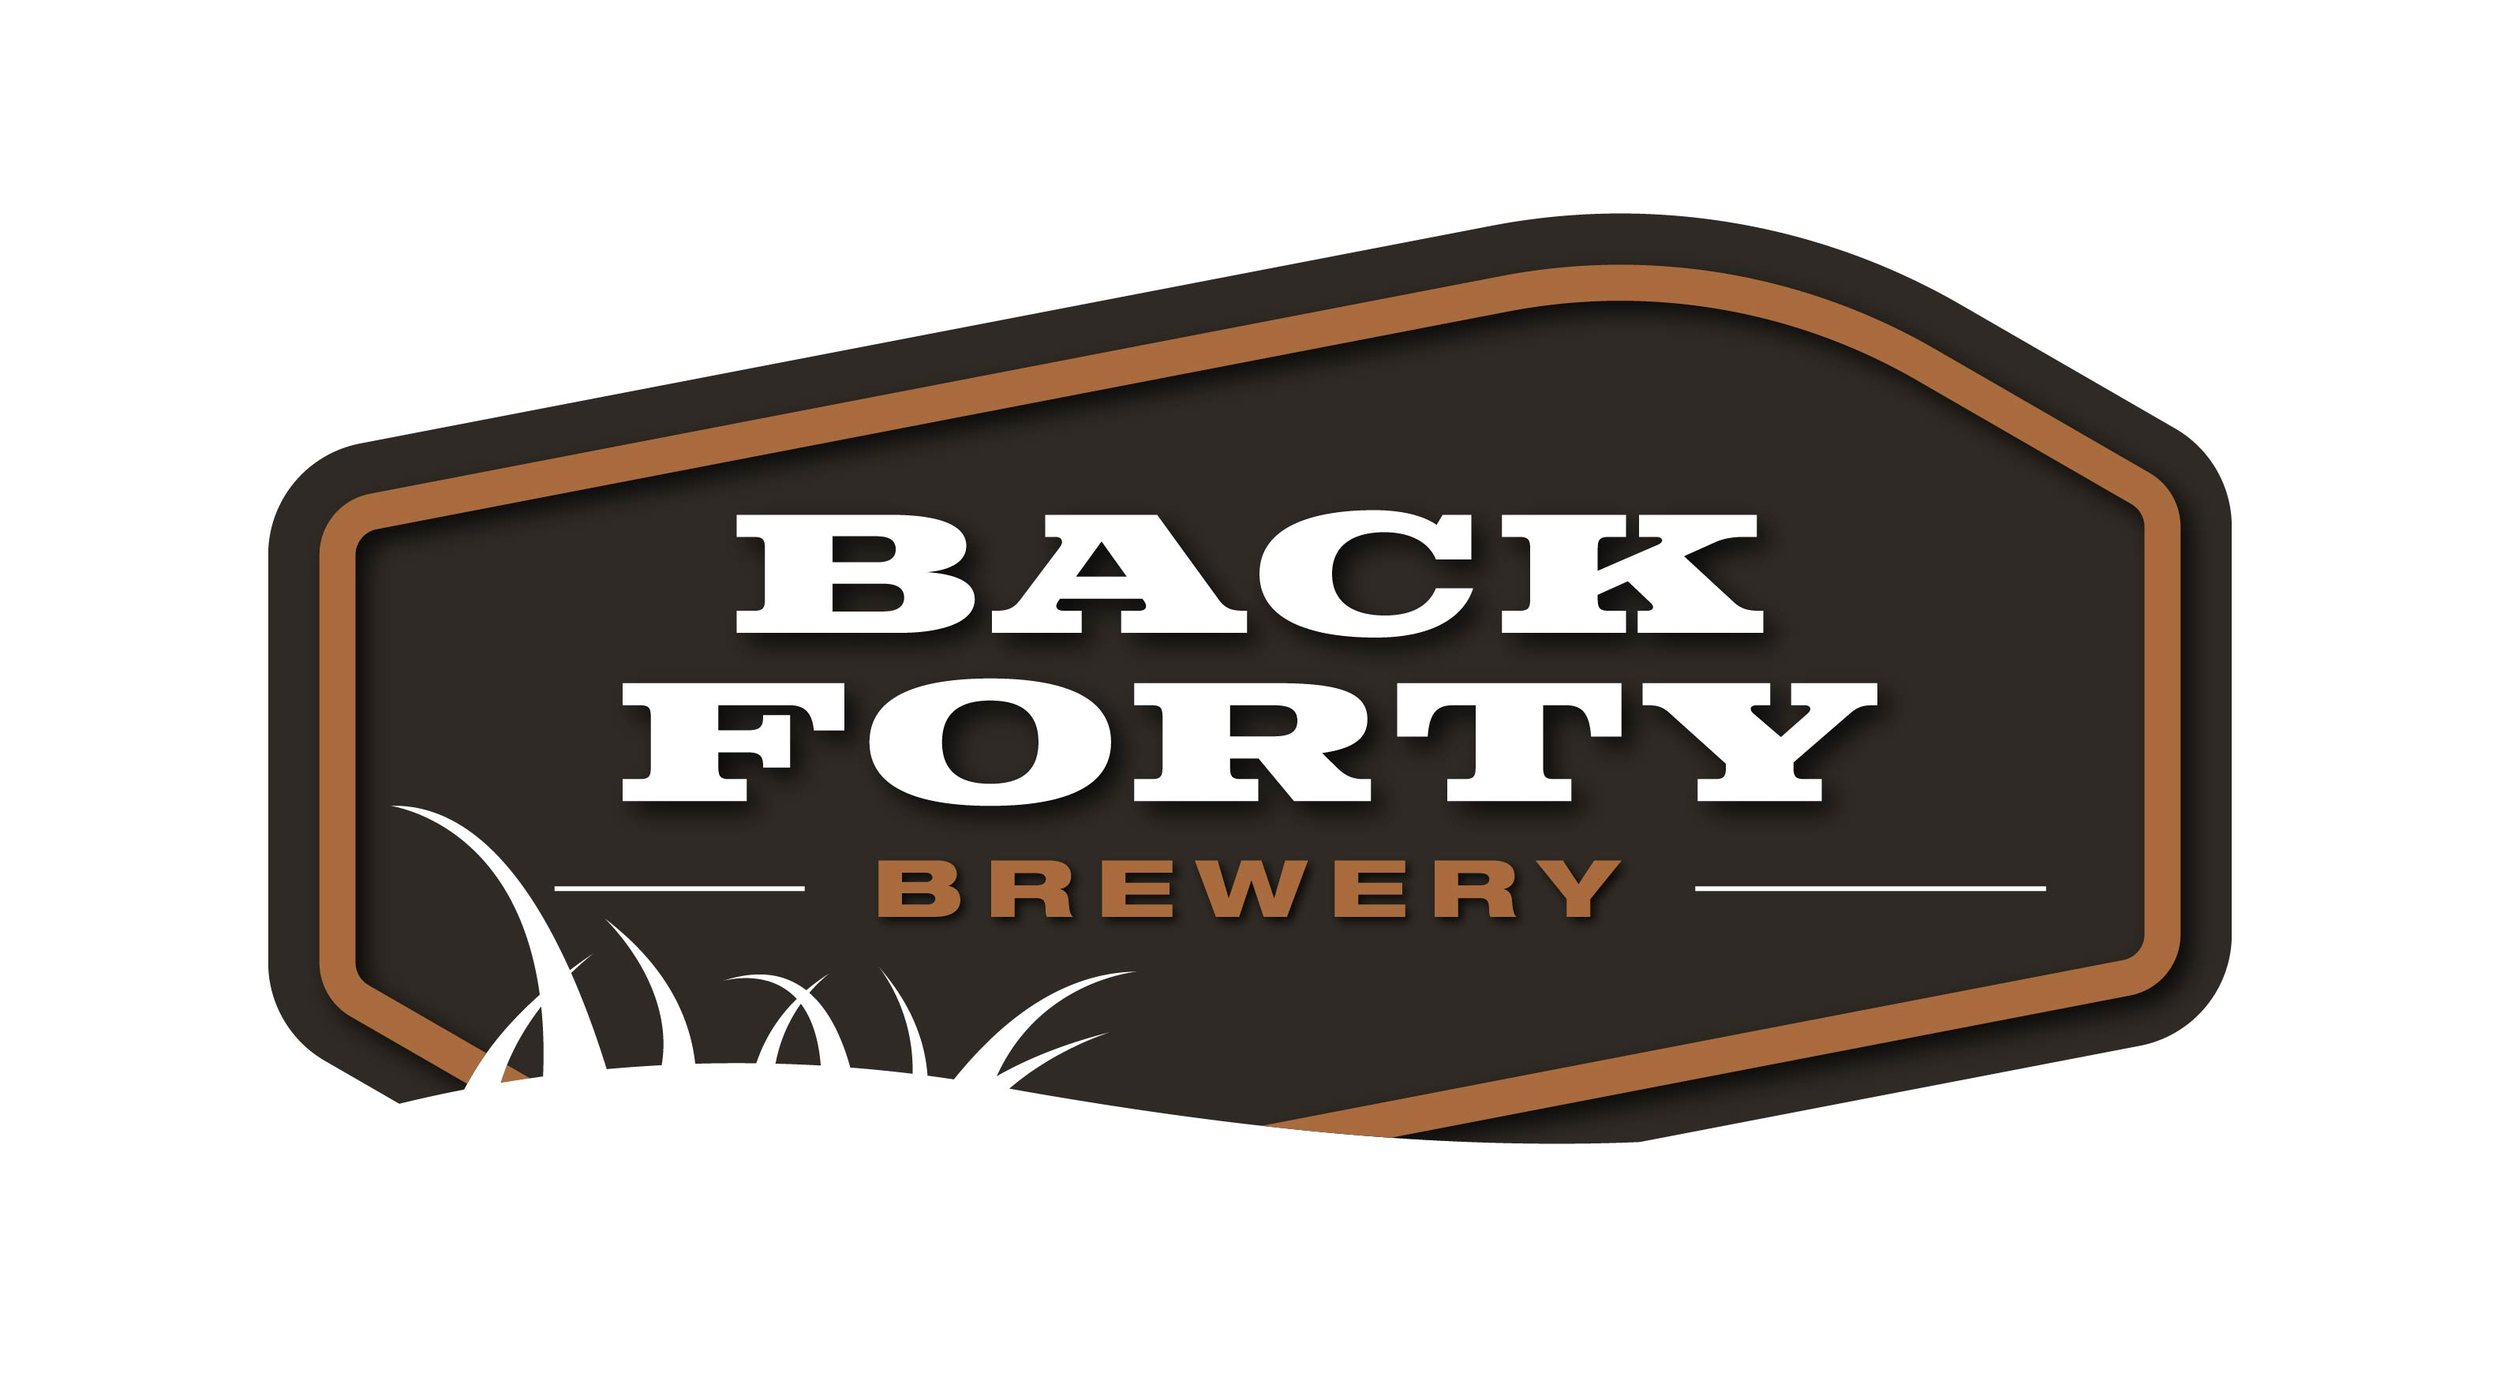 Back Forty Brewery logo design